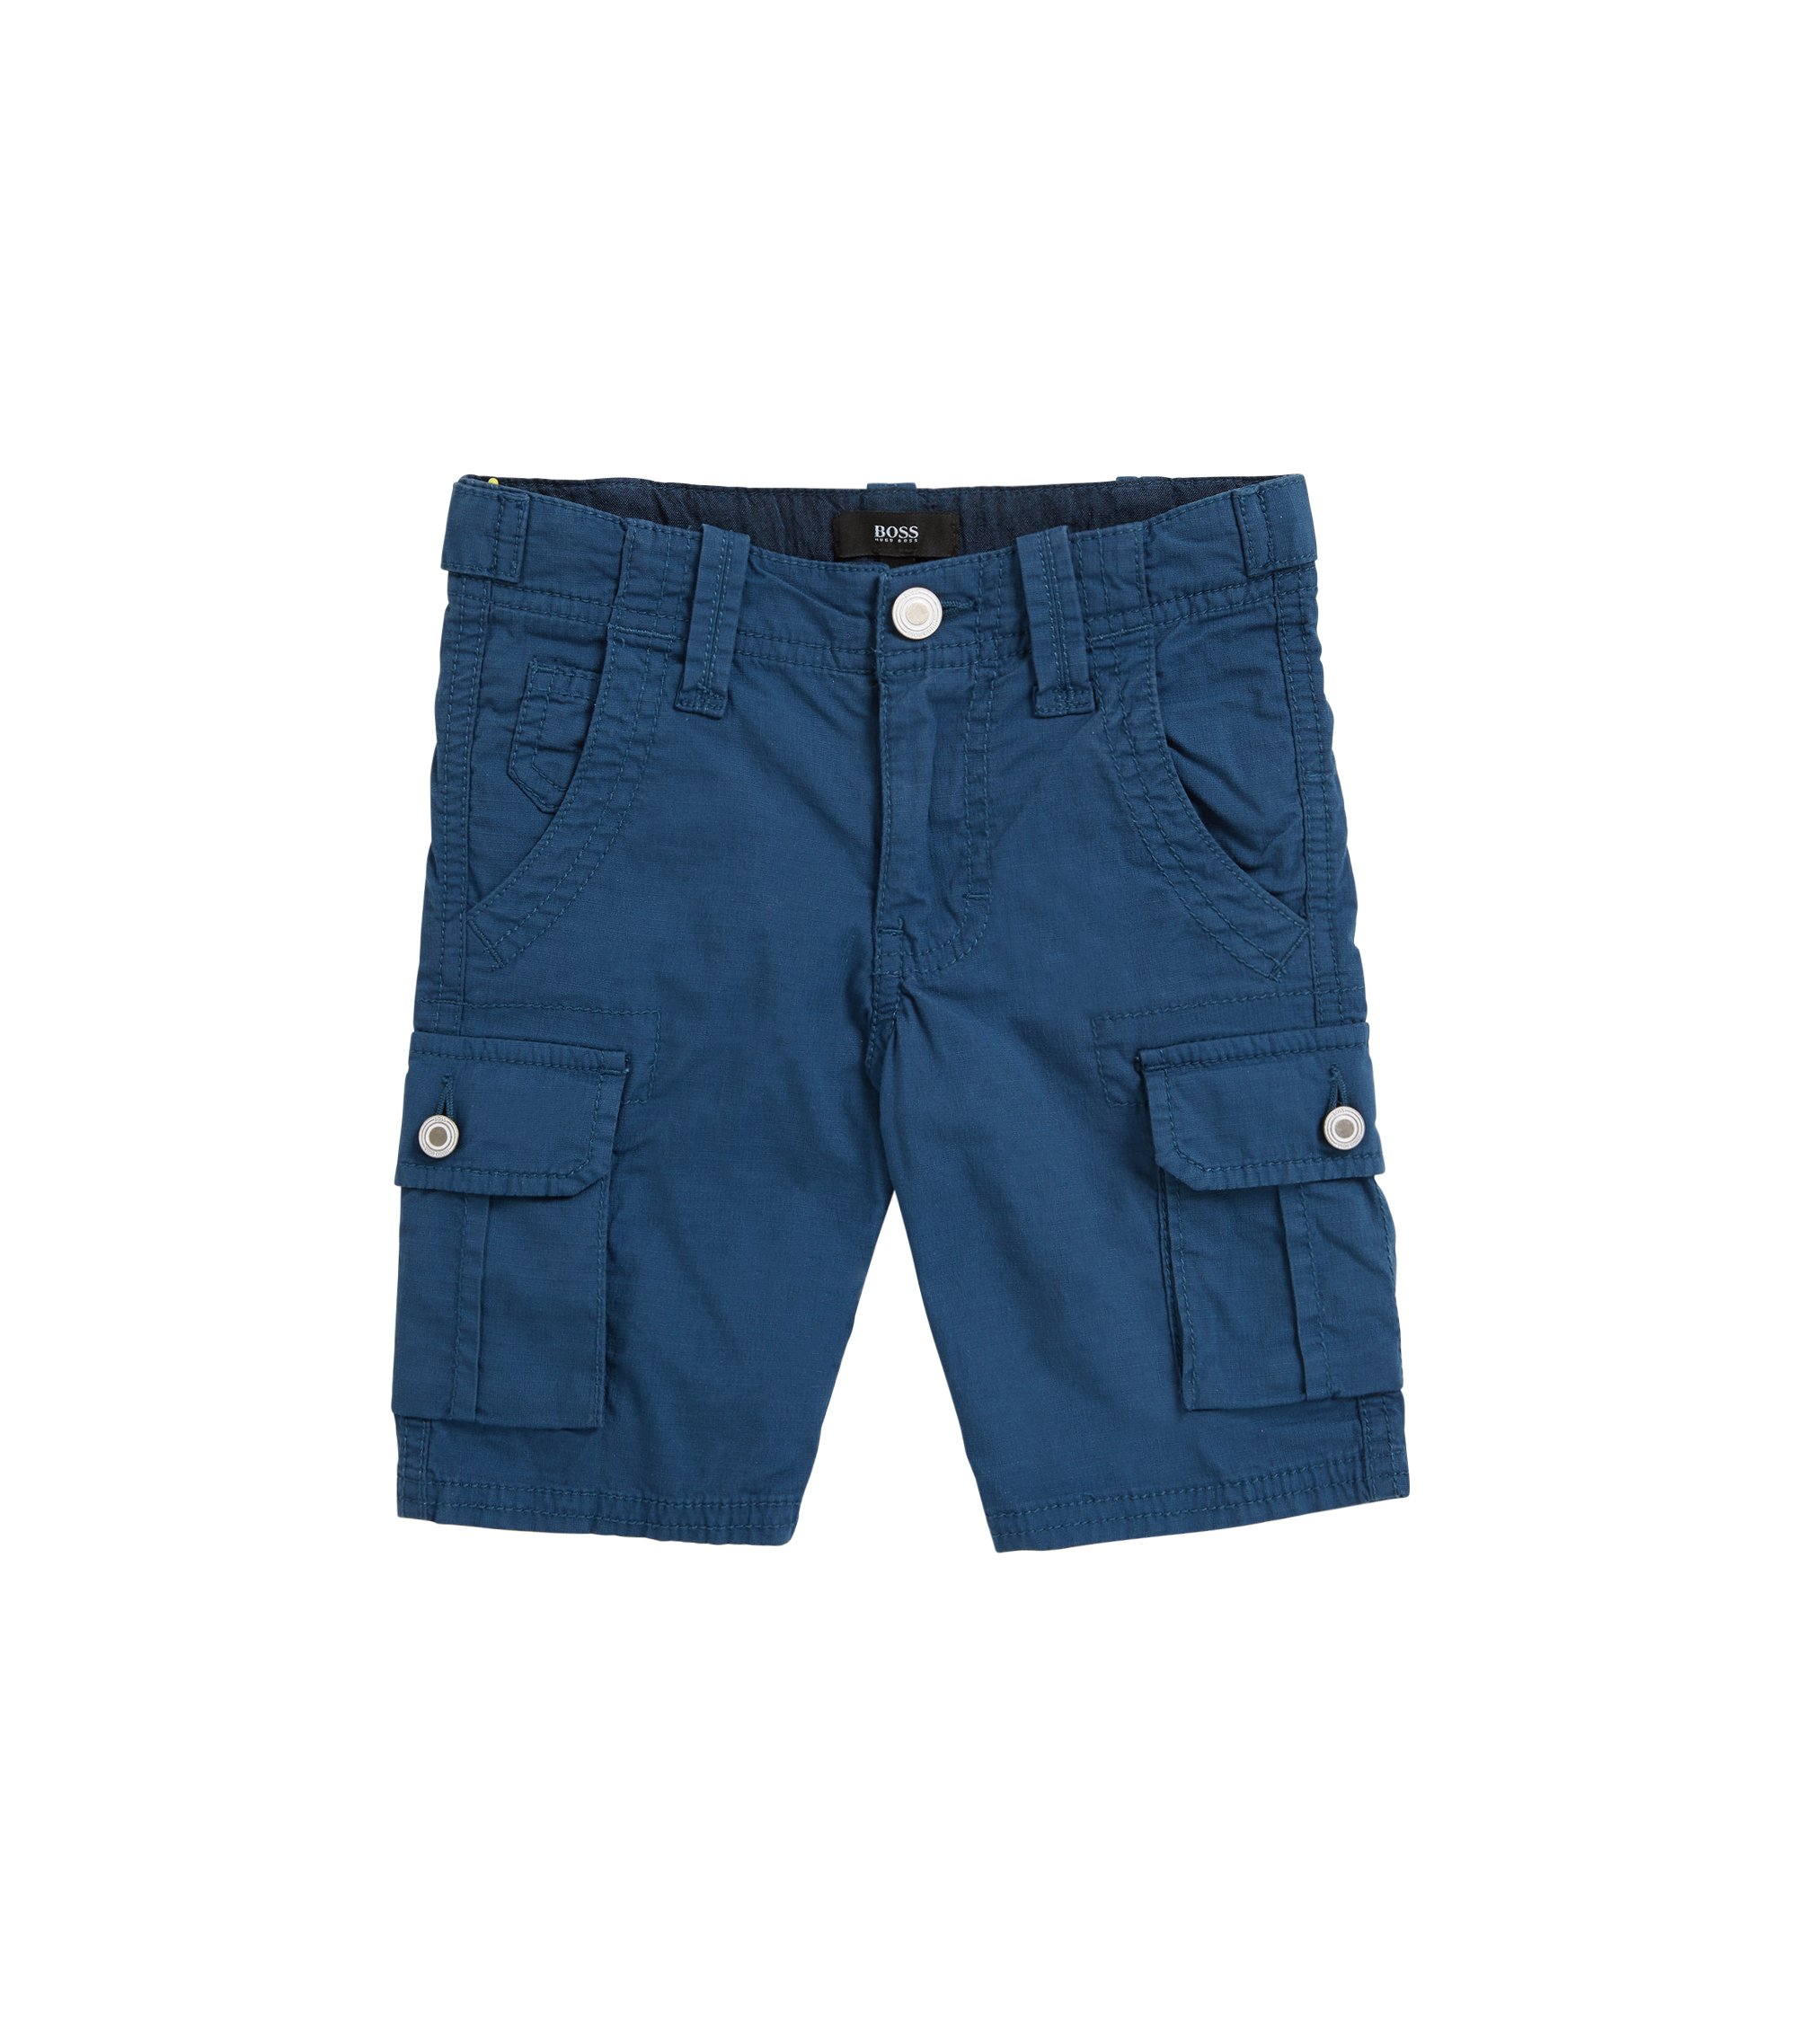 Kids' cotton Bermuda shorts with chambray trims, Open Orange